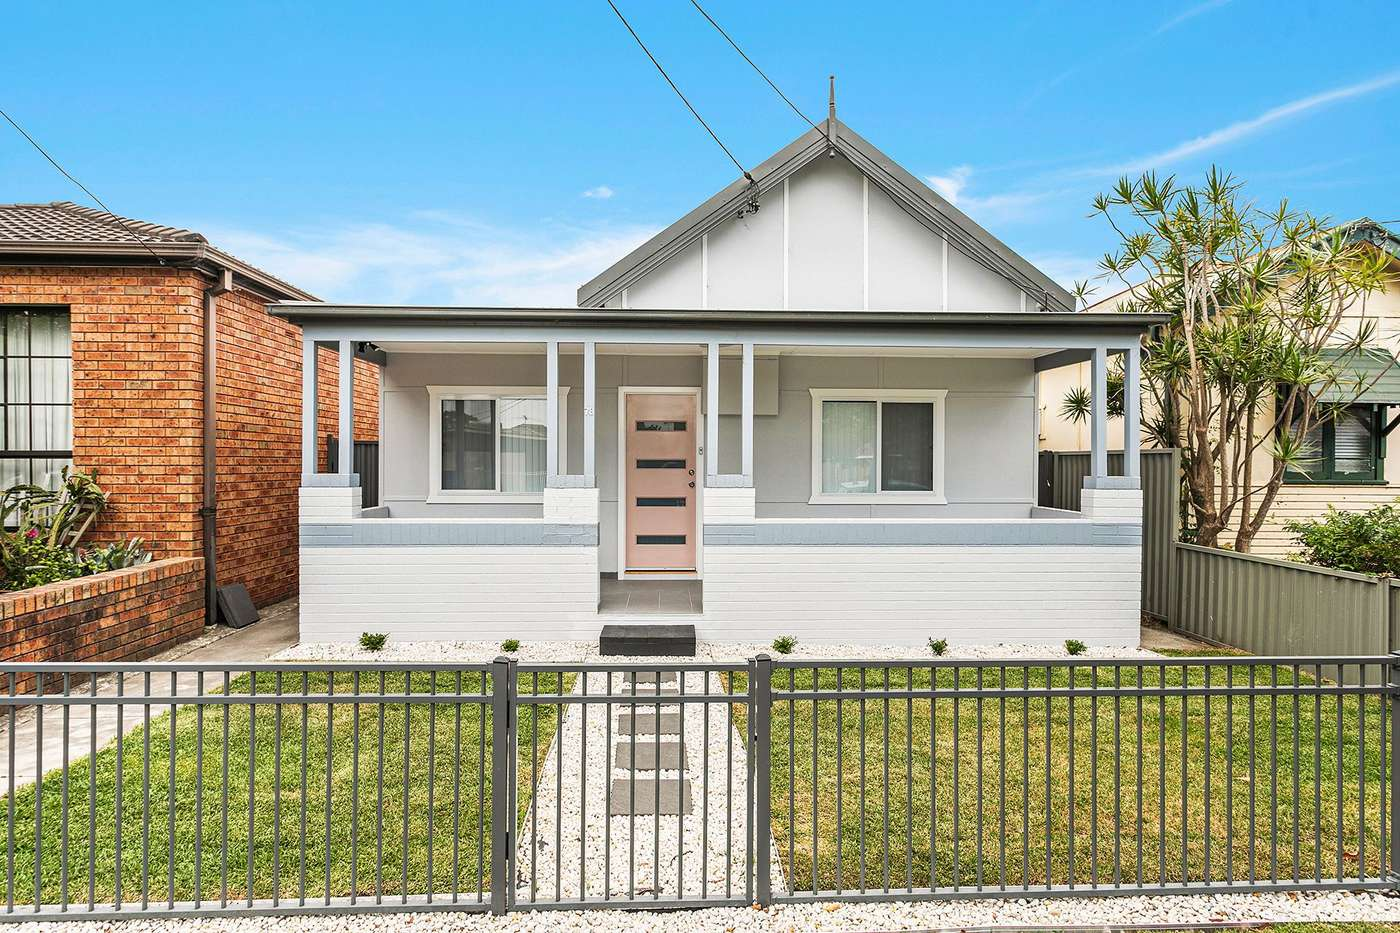 Main view of Homely house listing, 78 Spring Street, Arncliffe, NSW 2205